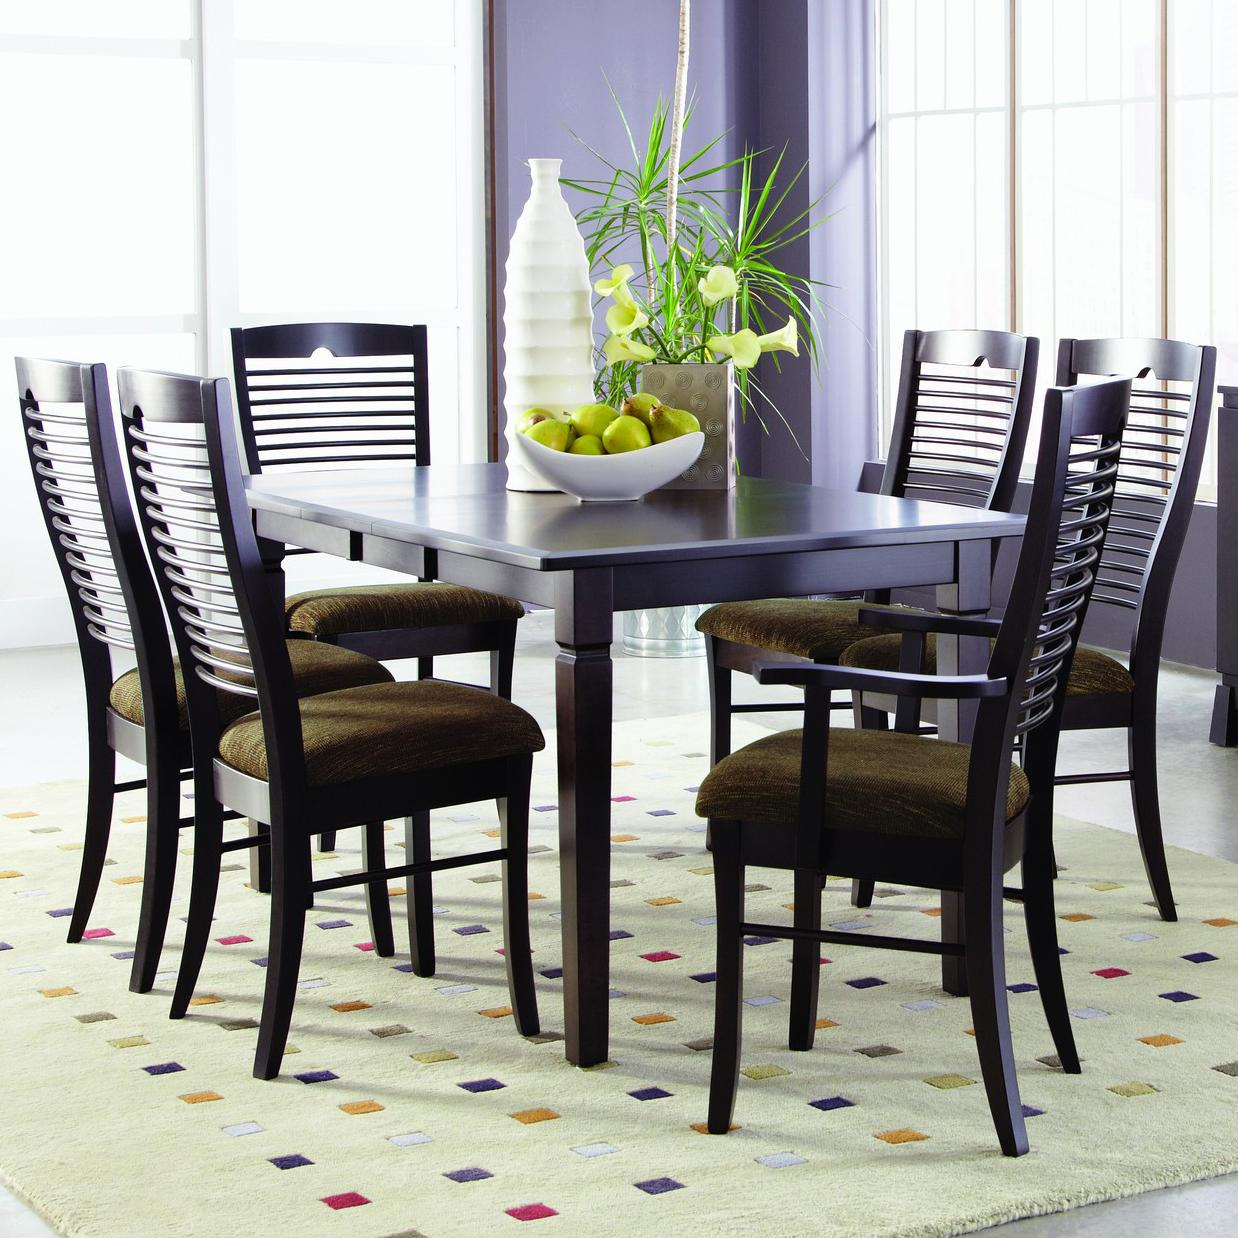 Romeo Customizable 7 Pc. Table Set by Palettes at Virginia Furniture Market